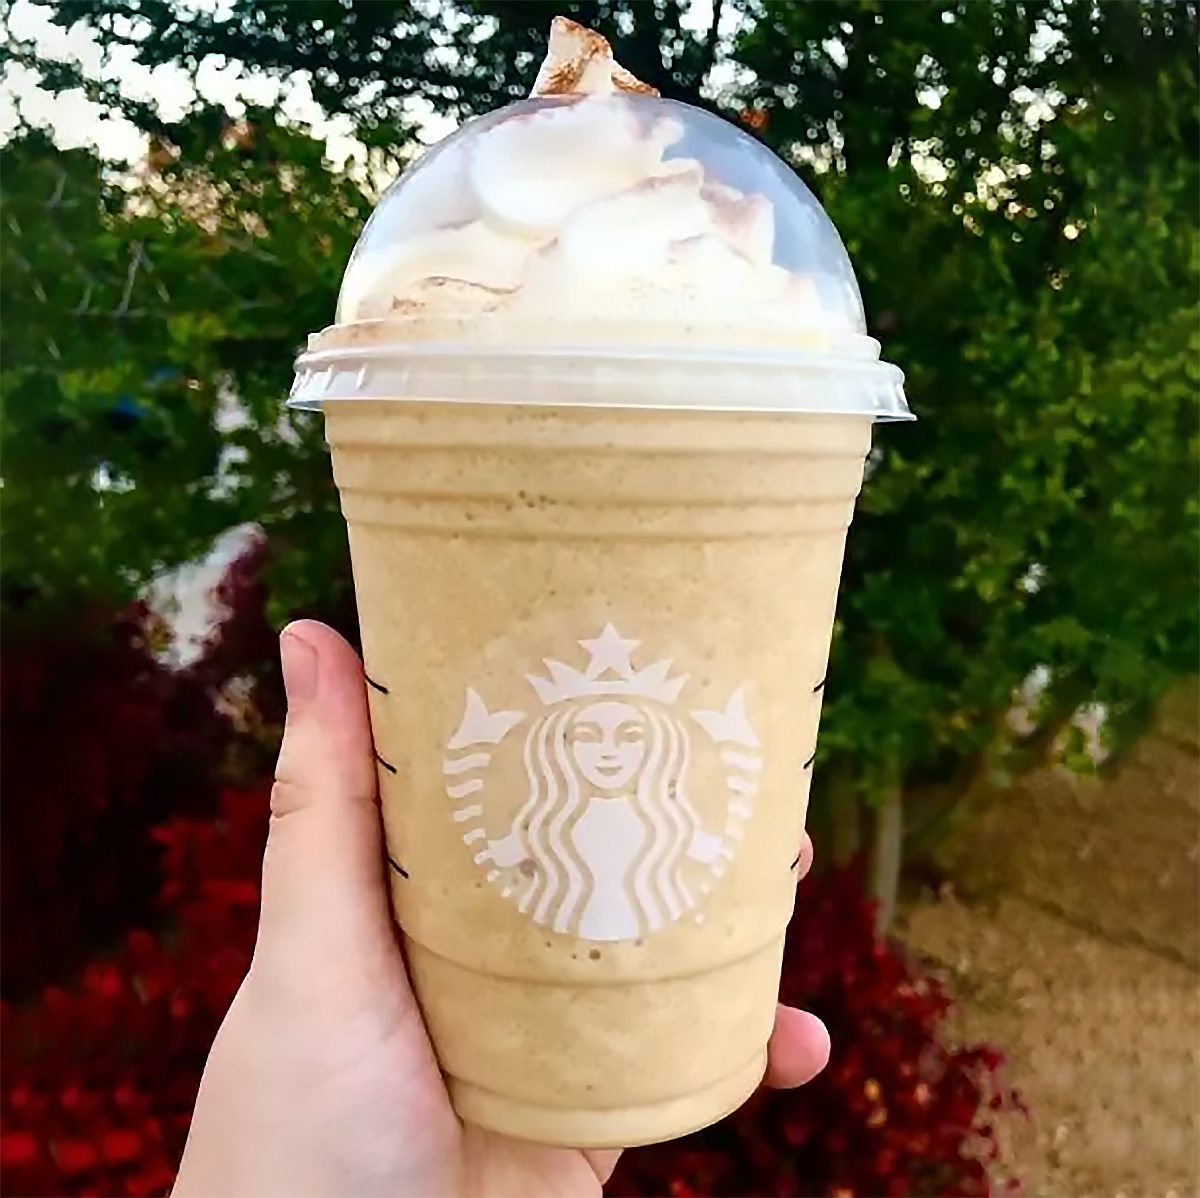 Starbucks French Toast Frappuccino from the secret menu